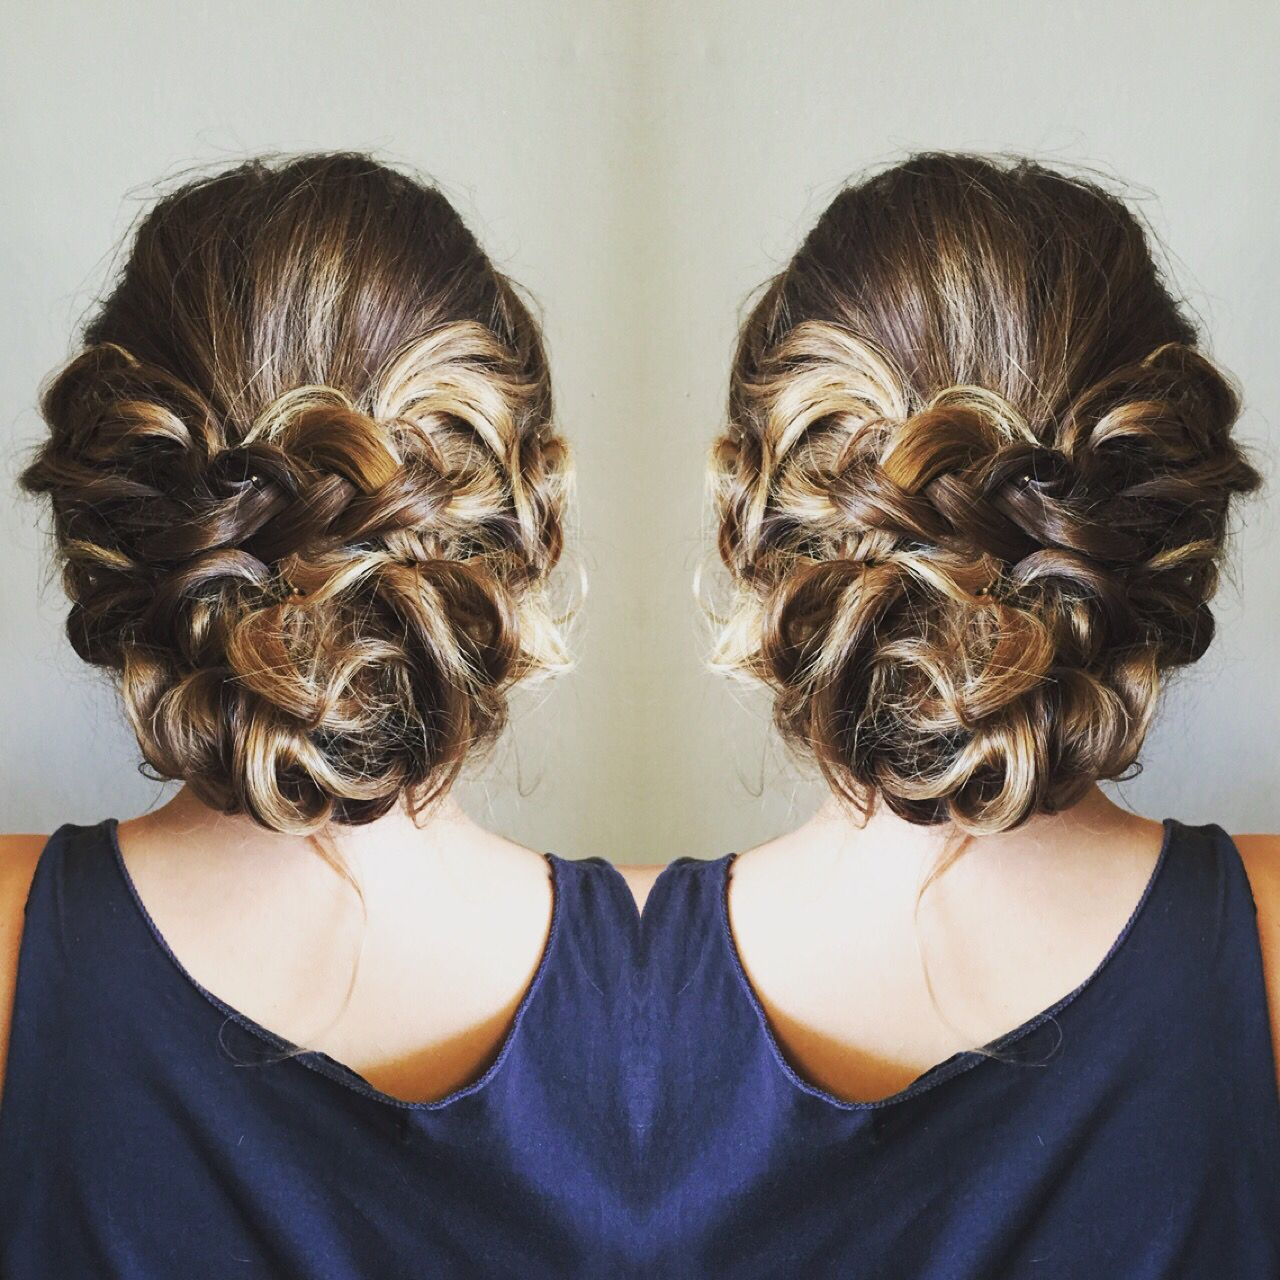 One of my hair ups.